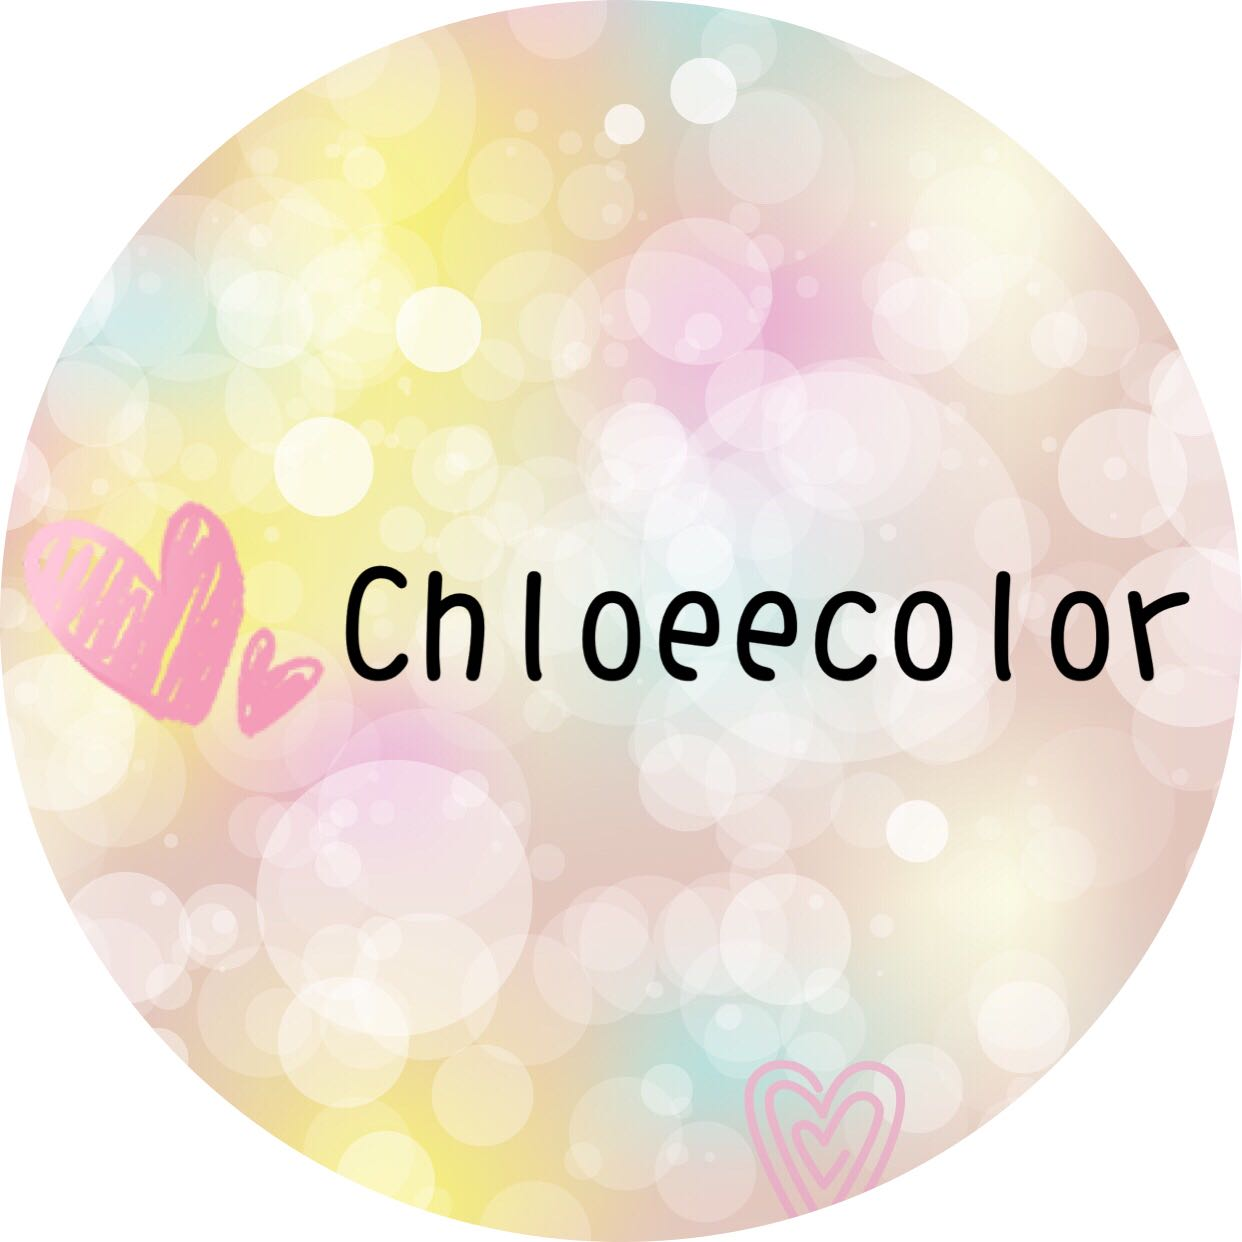 chloeecolor